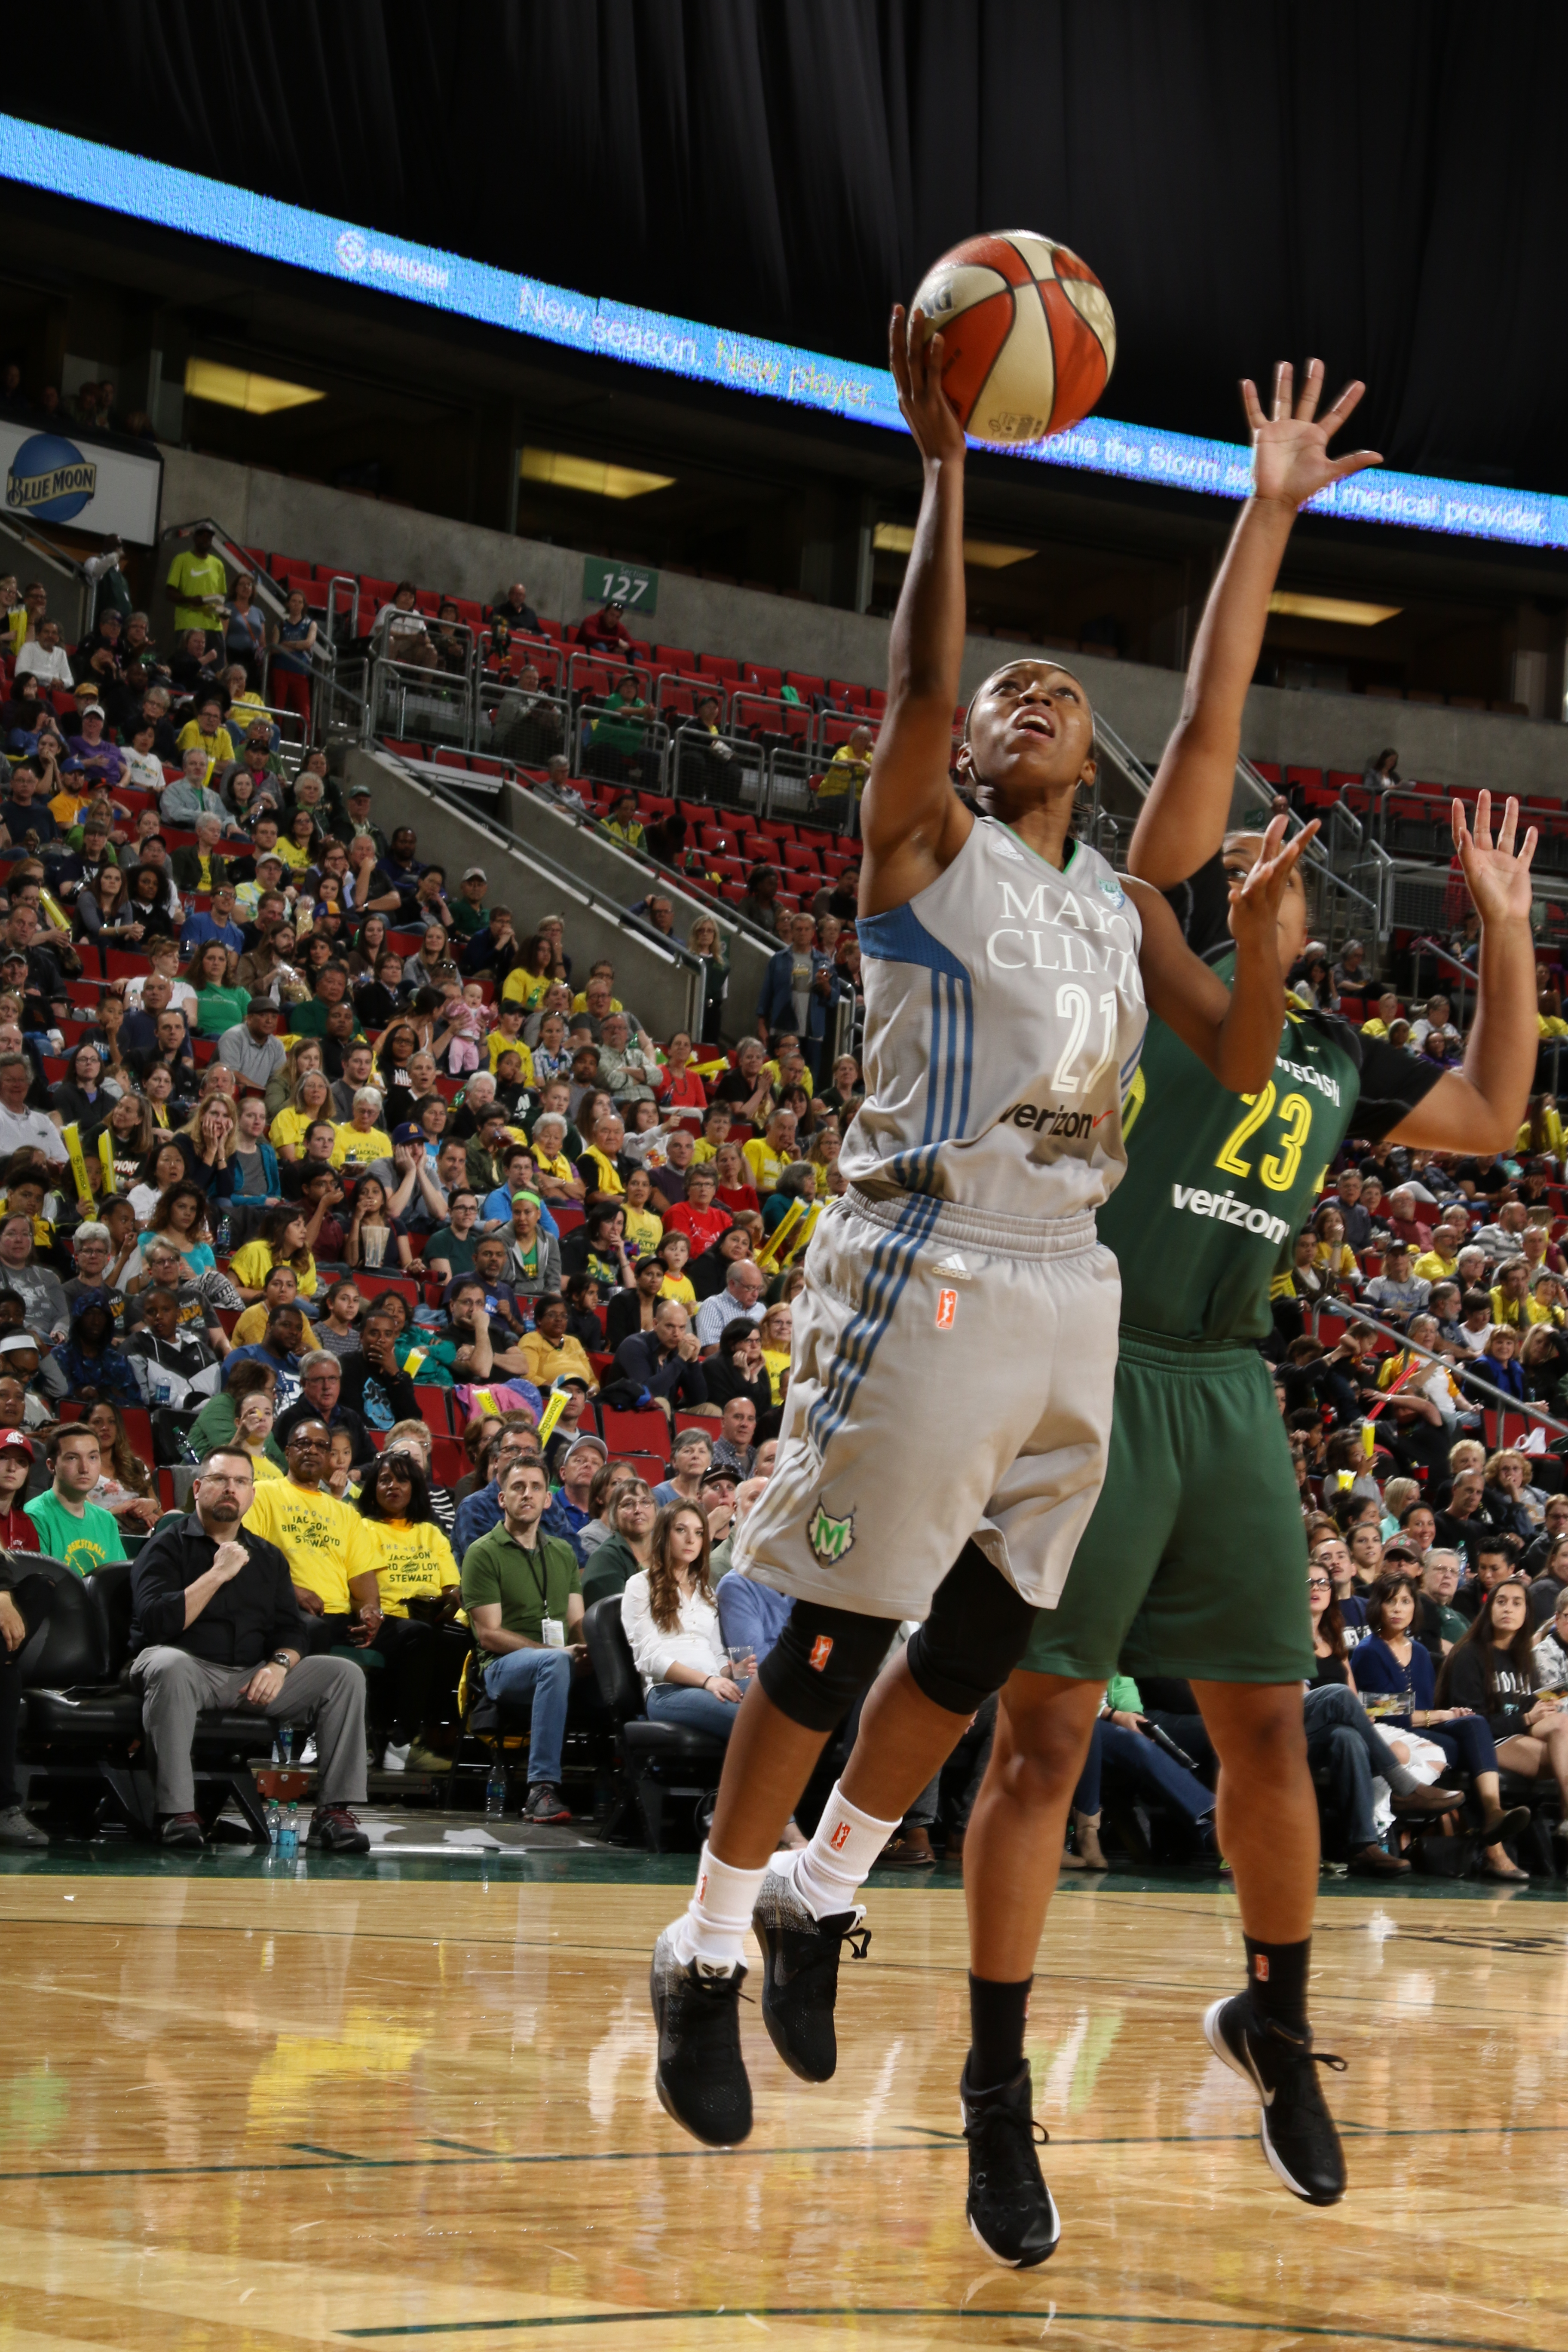 SEATTLE, WA - MAY 22: Renee Montgomery #21 of the Minnesota Lynx shoots the ball against the Minnesota Lynx  on May 22, 2016 at KeyArena in Seattle, Washington. NOTE TO USER: User expressly acknowledges and agrees that, by downloading and or using this photograph, user is consenting to the terms and conditions of Getty Images License Agreement. Mandatory Copyright Notice: Copyright 2016 NBAE (Photo by Josh Huston/NBAE via Getty Images)